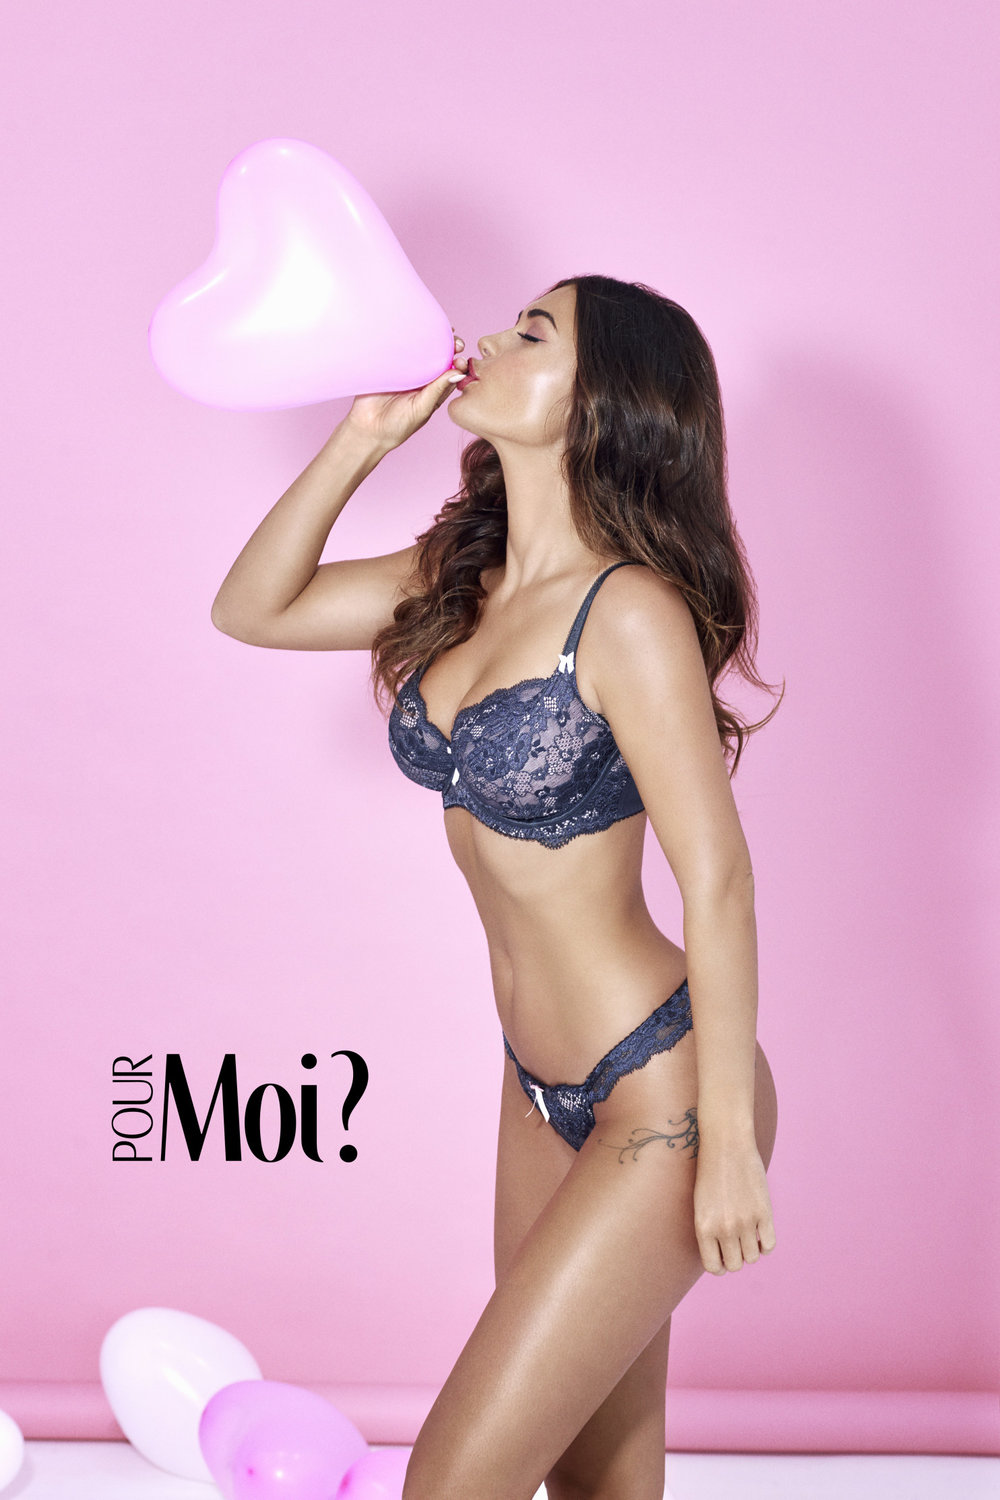 lingerie-photographer-campaign-pink-shoot-1484x2226.jpg